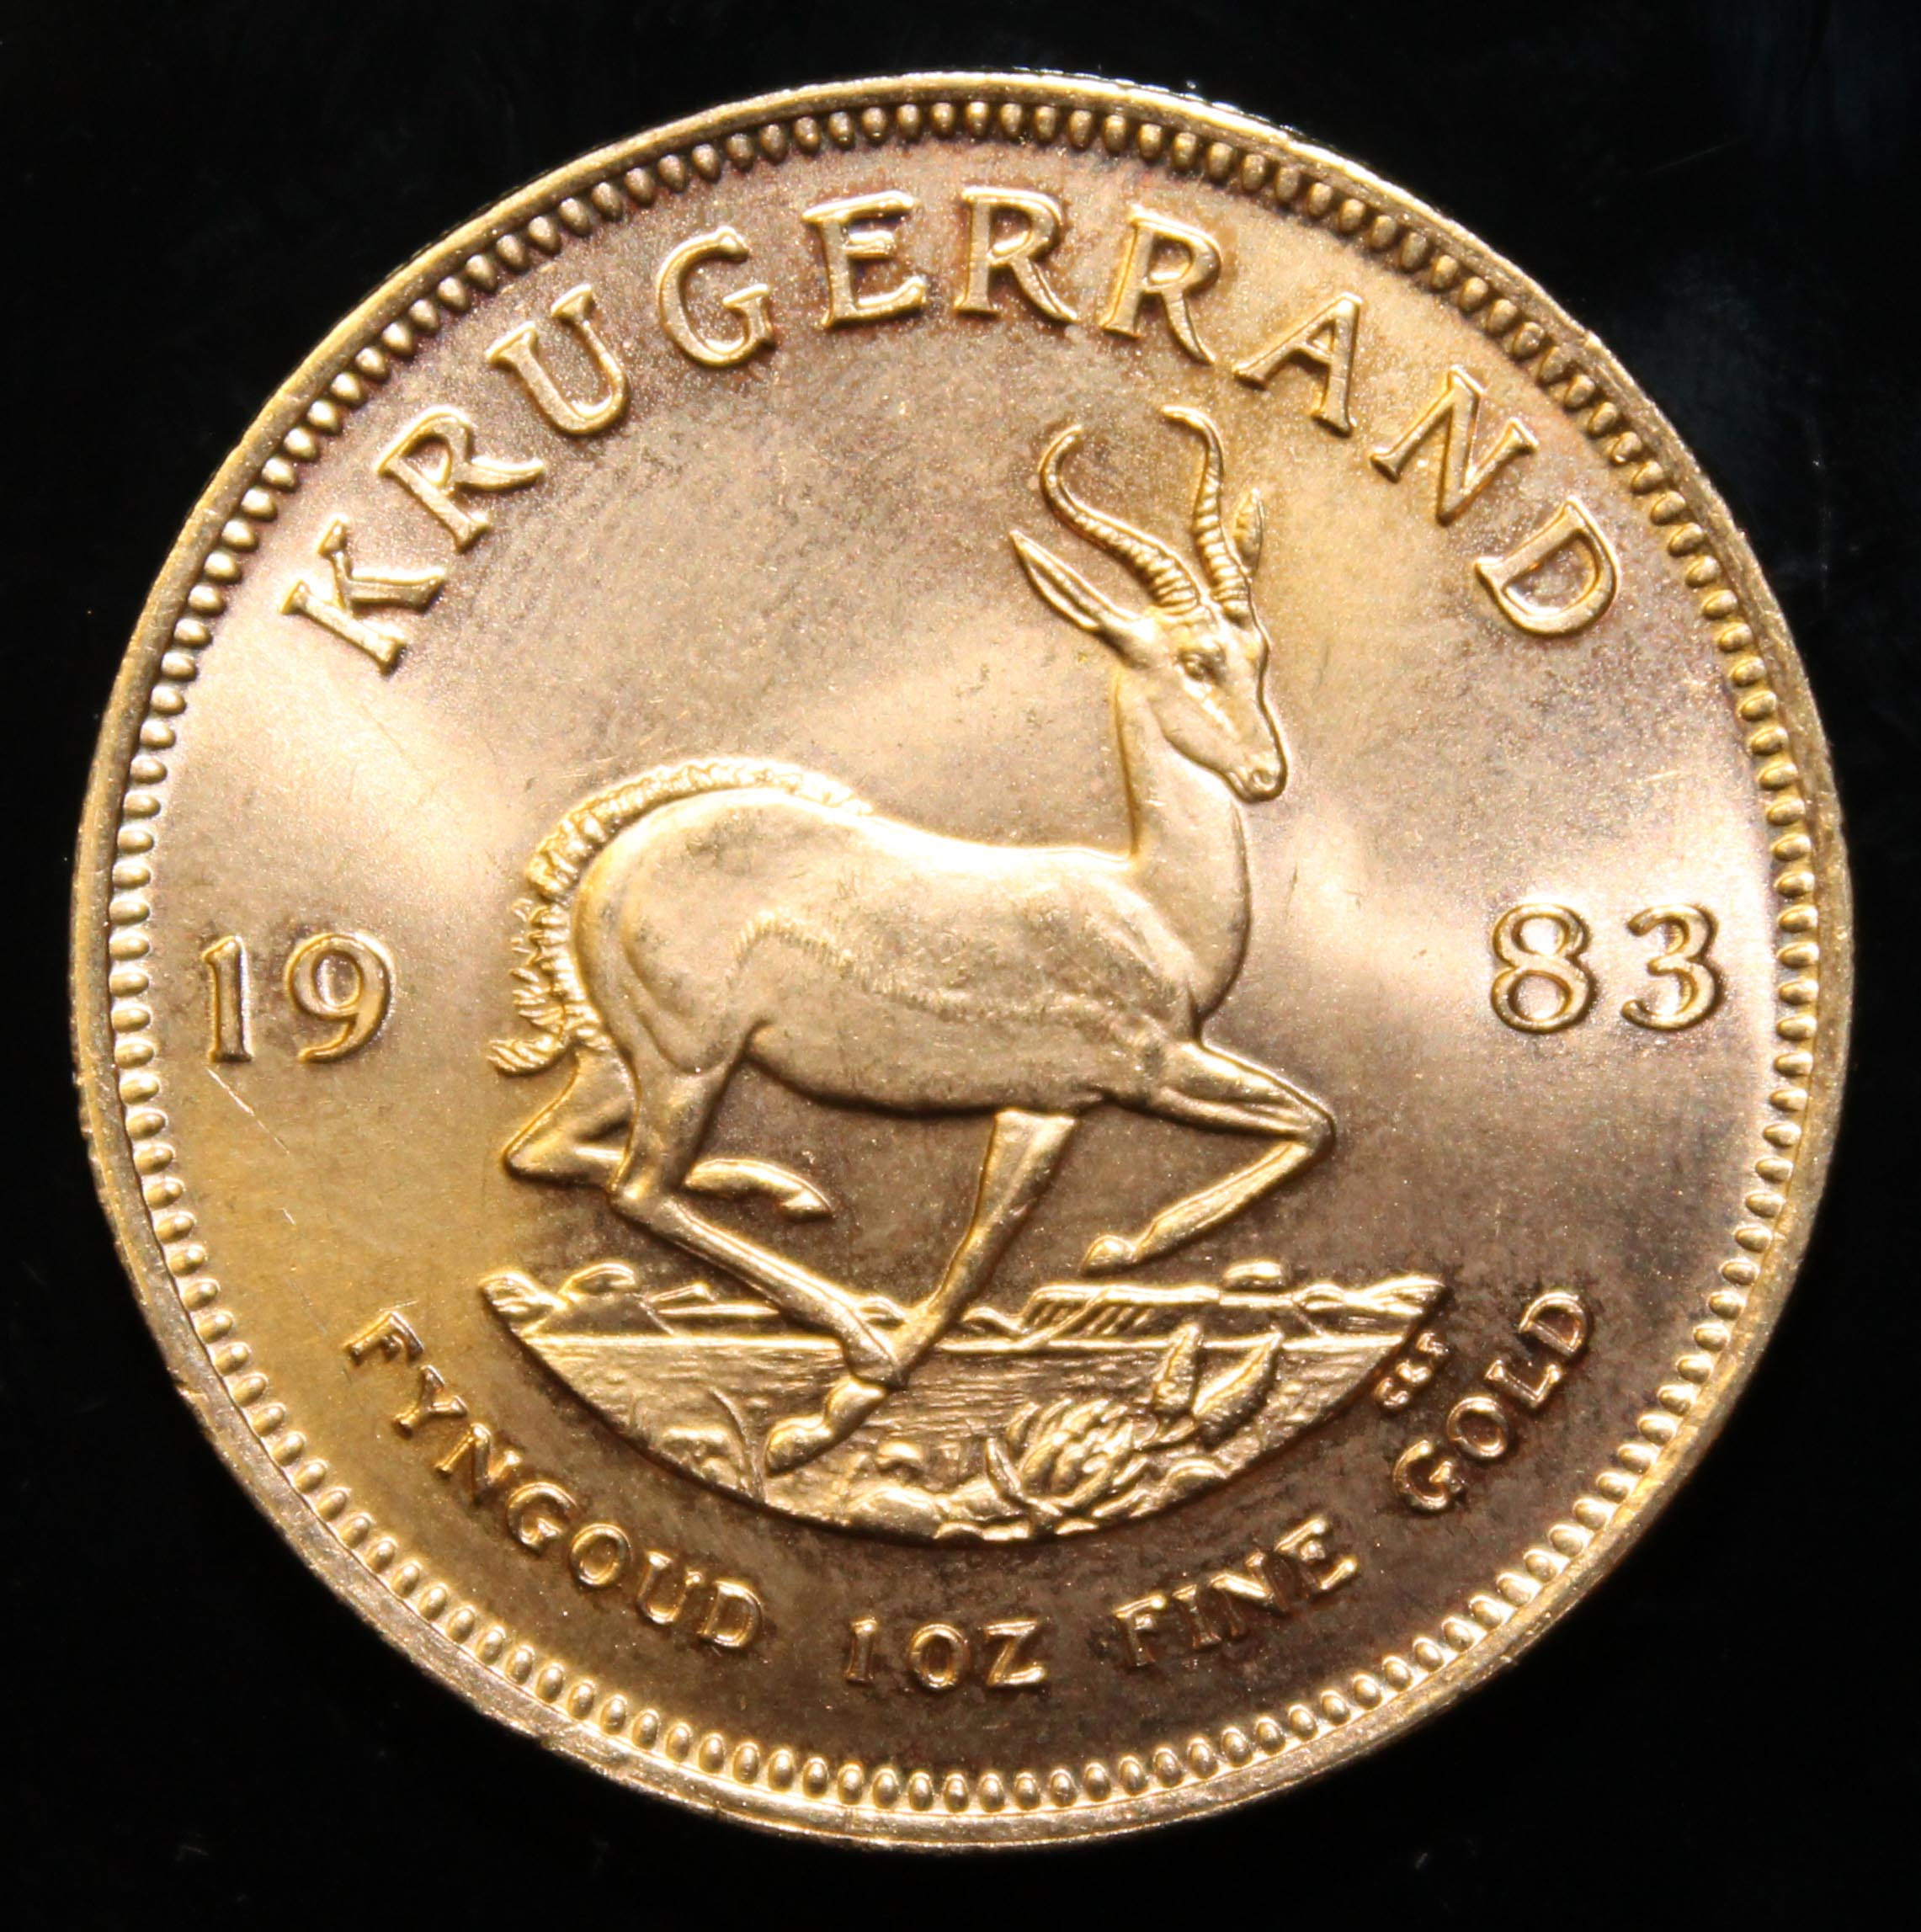 South Africa, 1983 Krugerrand, 1 oz. fine gold (91.67%) ONLY 10% BUYER'S PREMIUM (INCLUSIVE OF - Image 2 of 2